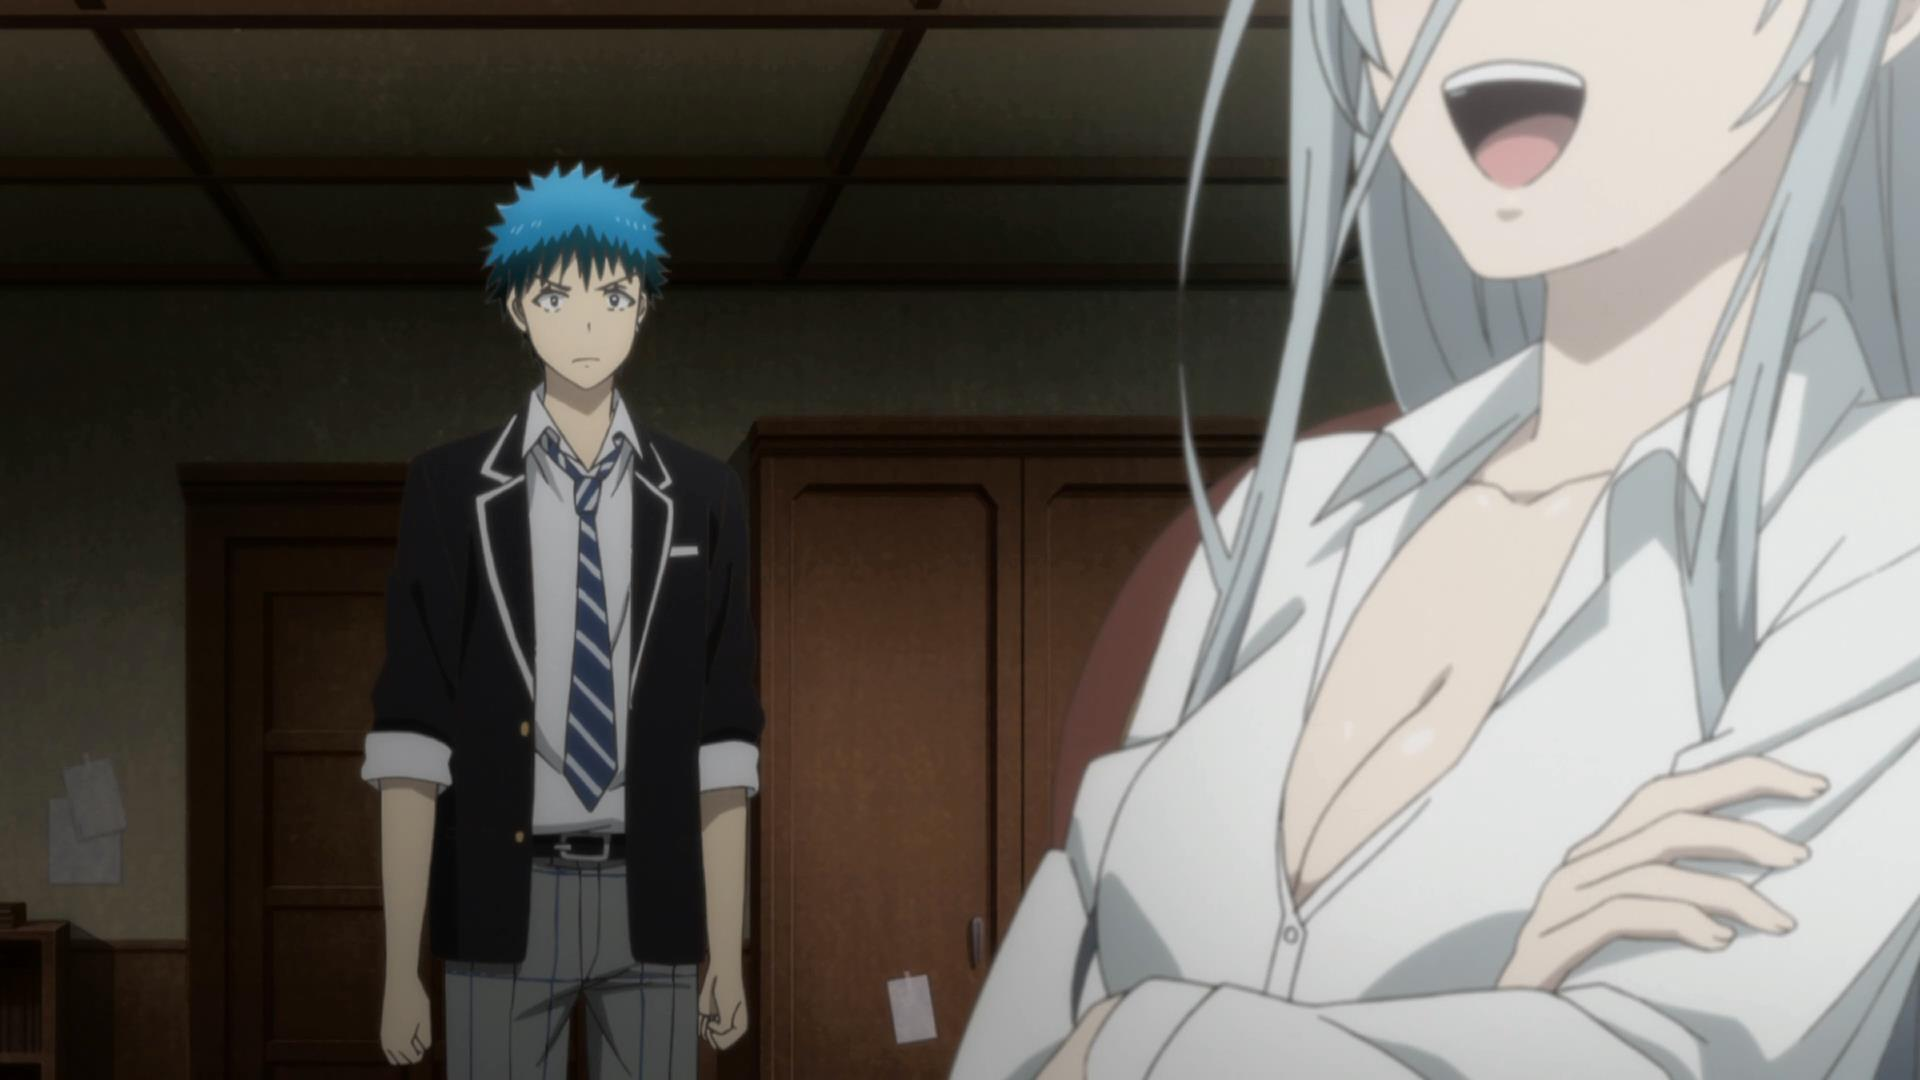 [HorribleSubs] Yamada-kun and the Seven Witches - 12 [1080p].mkv_snapshot_02.27_[2015.06.28_14.41.32]